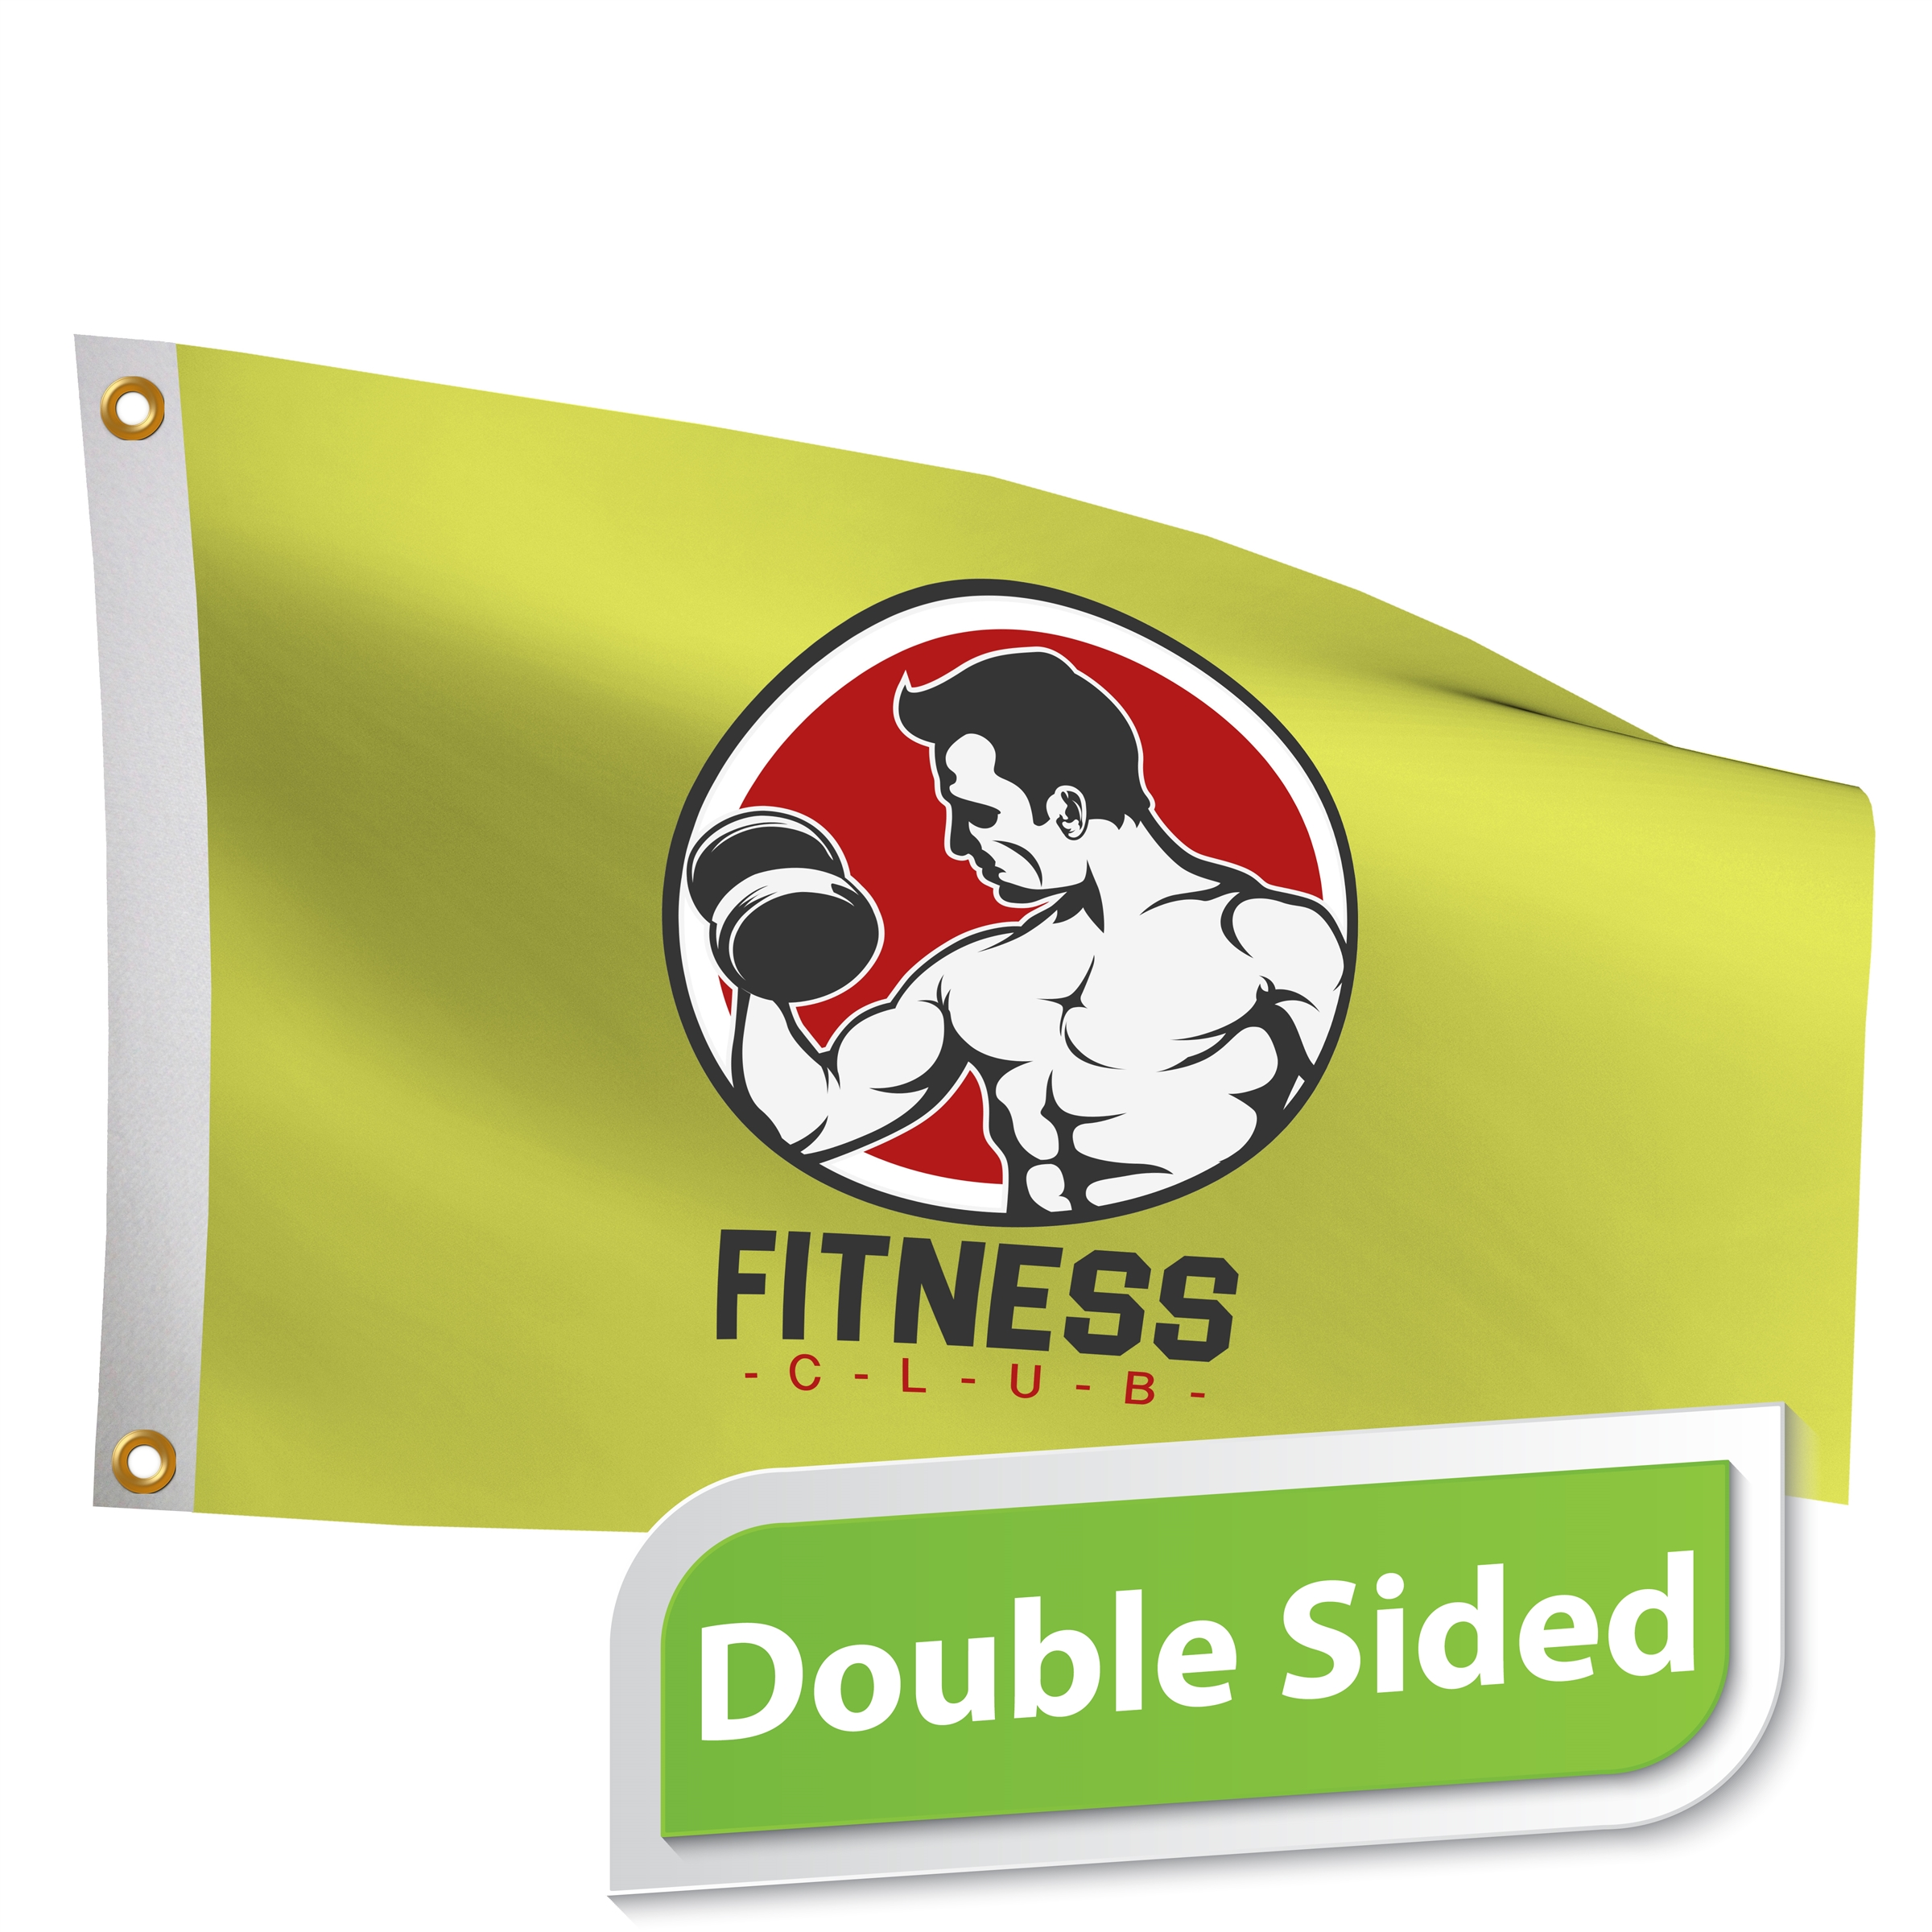 5' x 8' Custom Pole Flag Double Sided Print